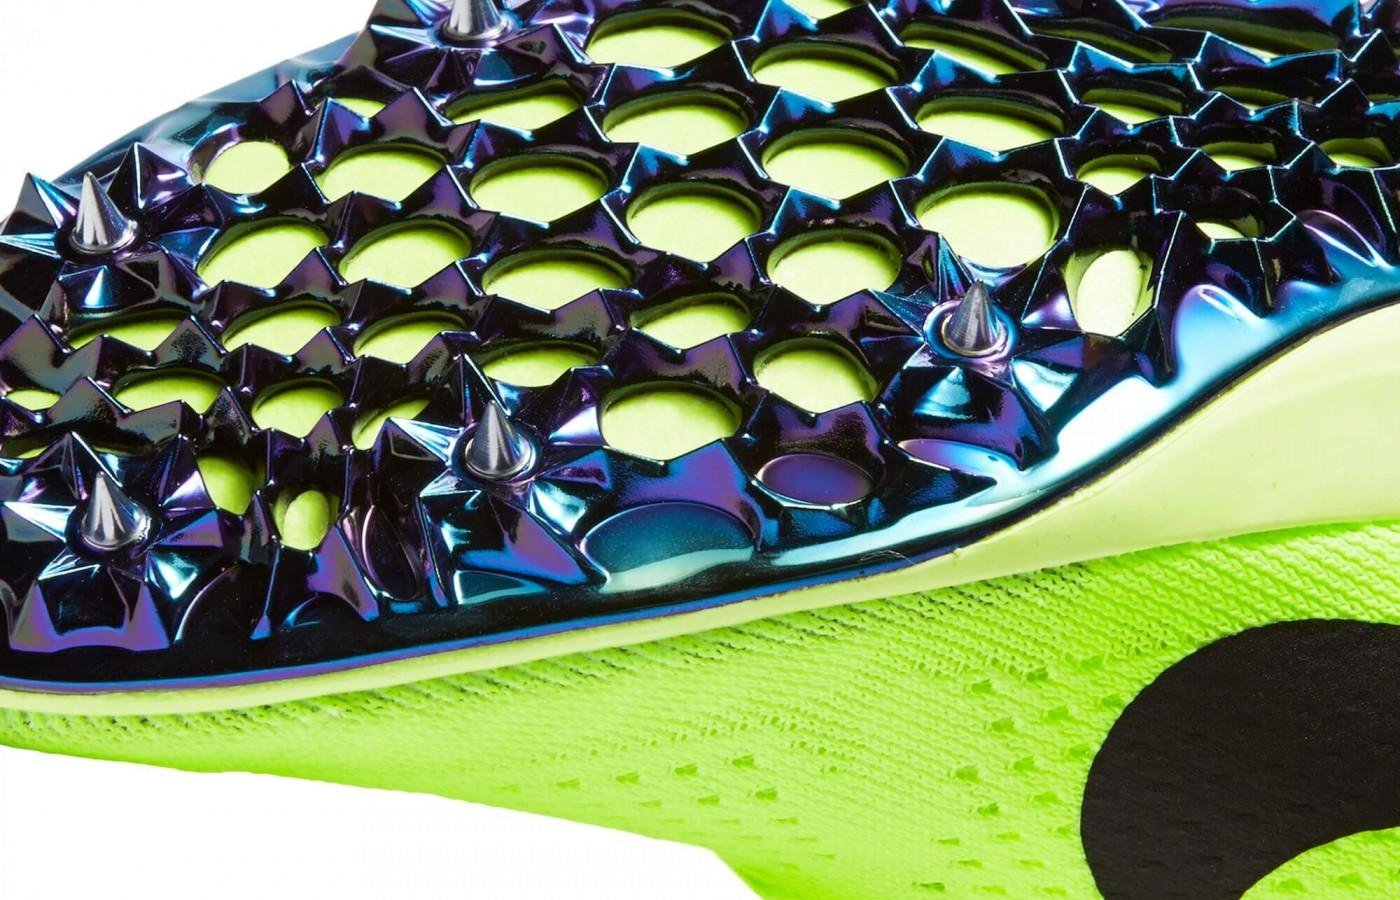 Nike Zoom Victory Elite 2 features a 3/4-inch spike plate